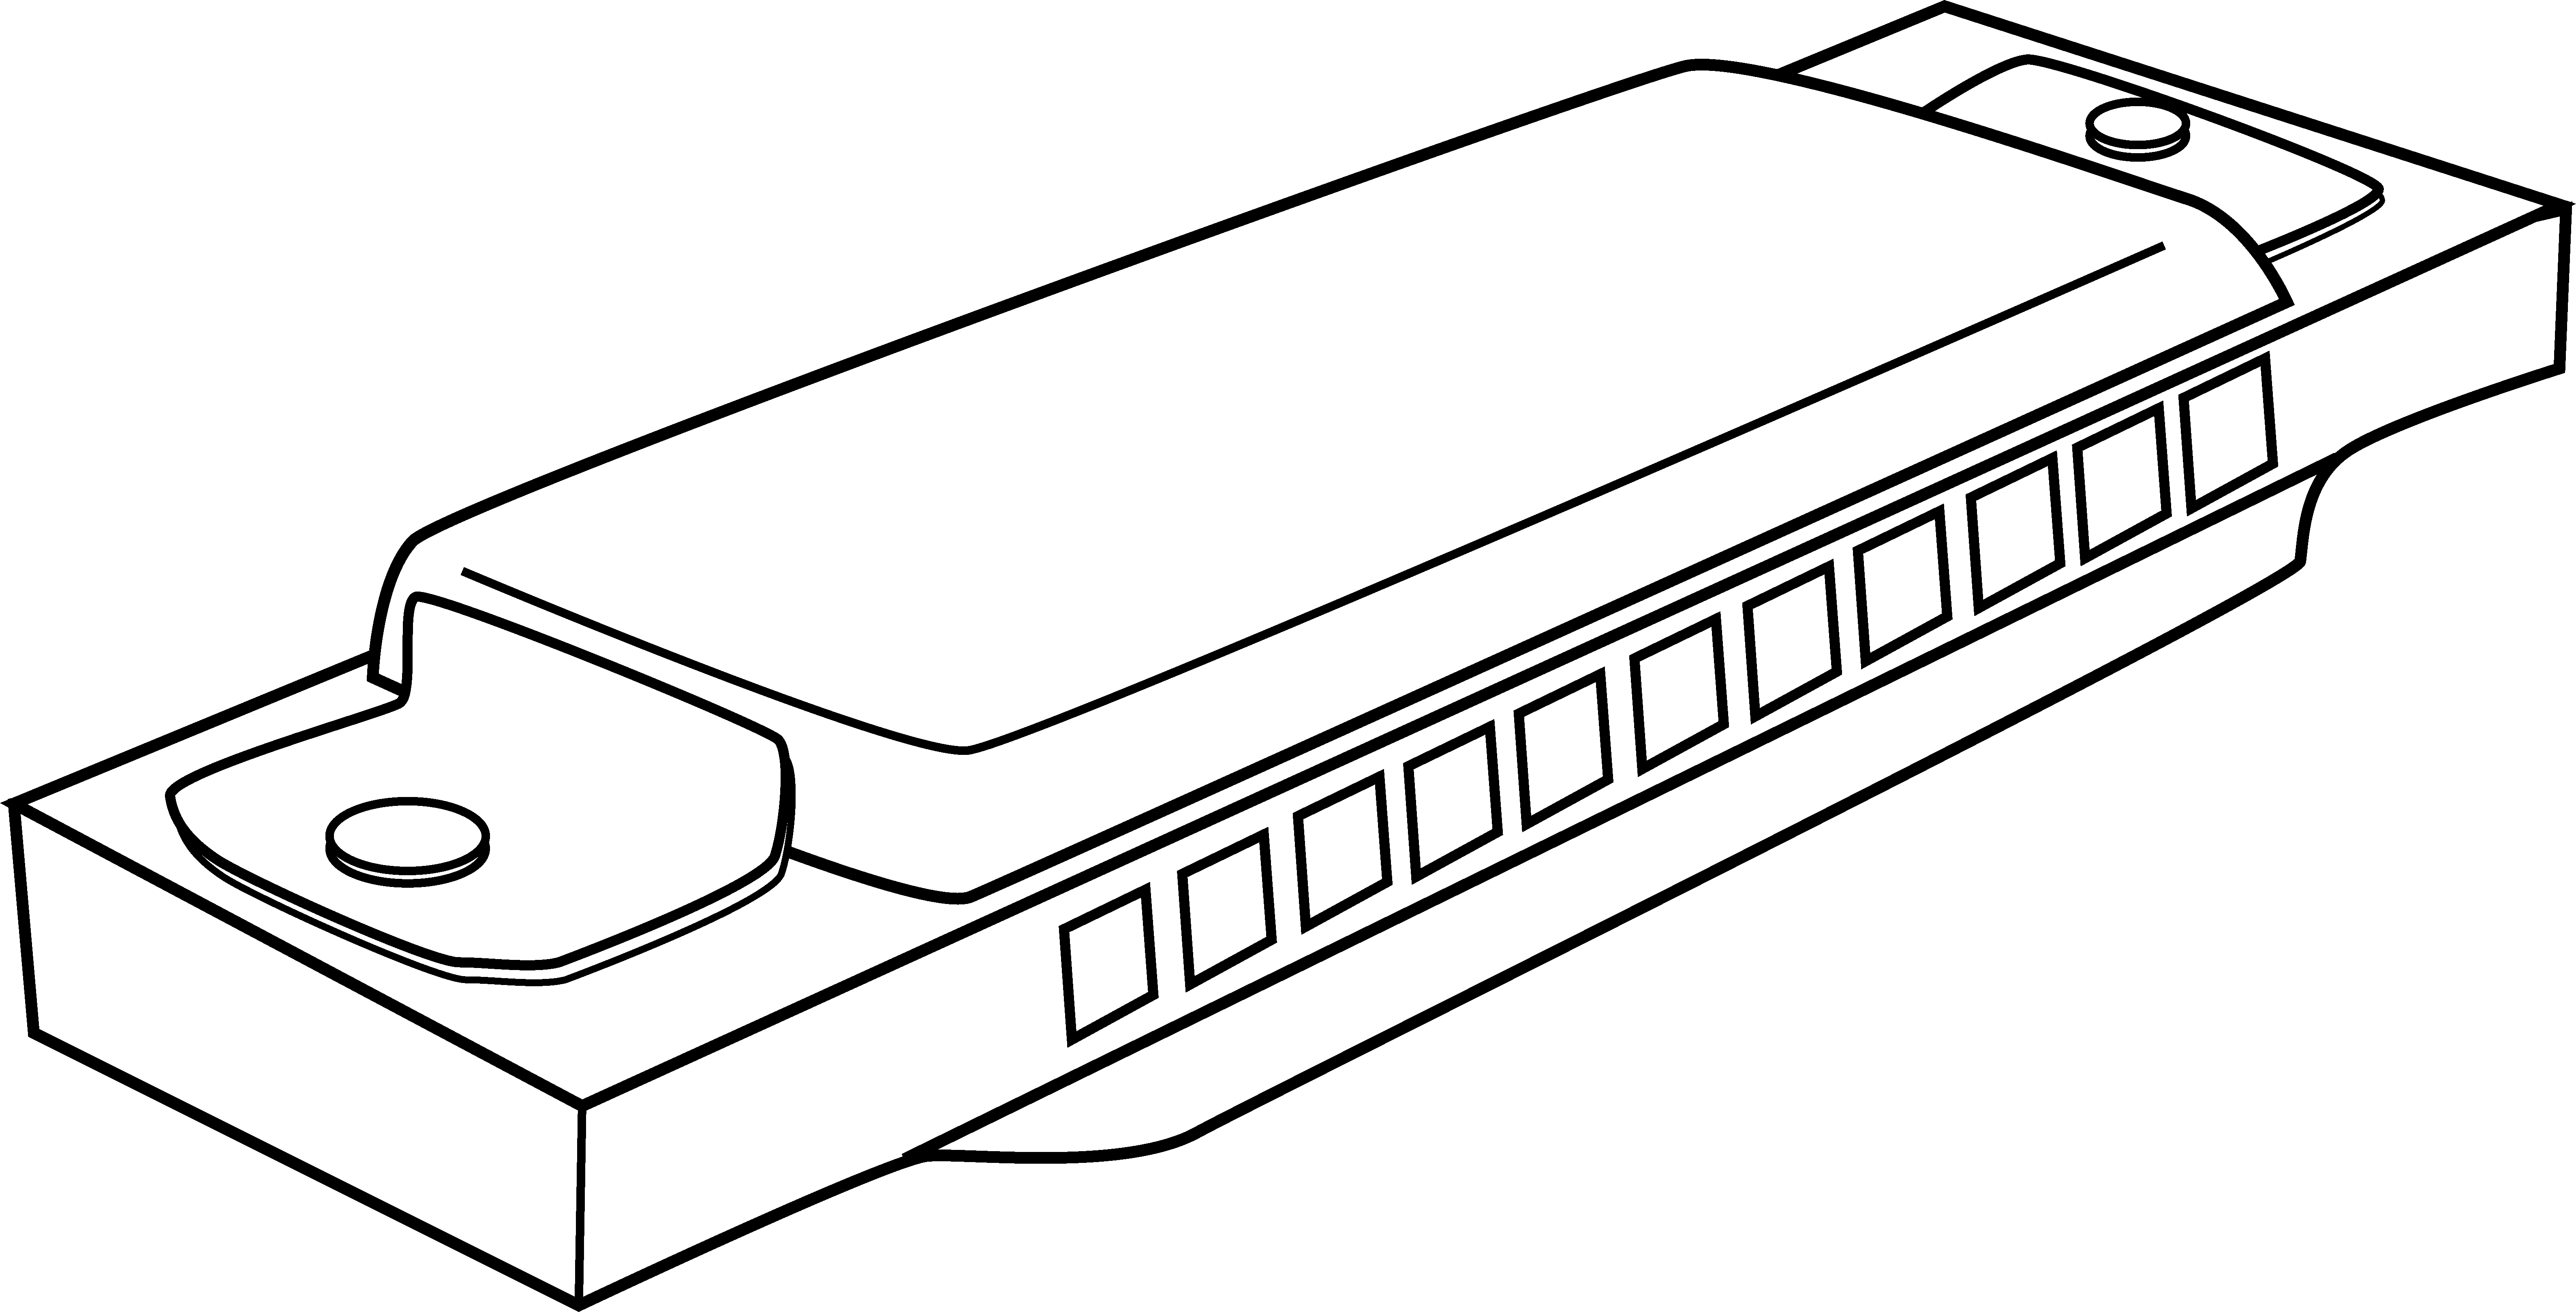 Harmonica clipart free picture black and white stock Harmonica Coloring Page - Free Clip Art picture black and white stock